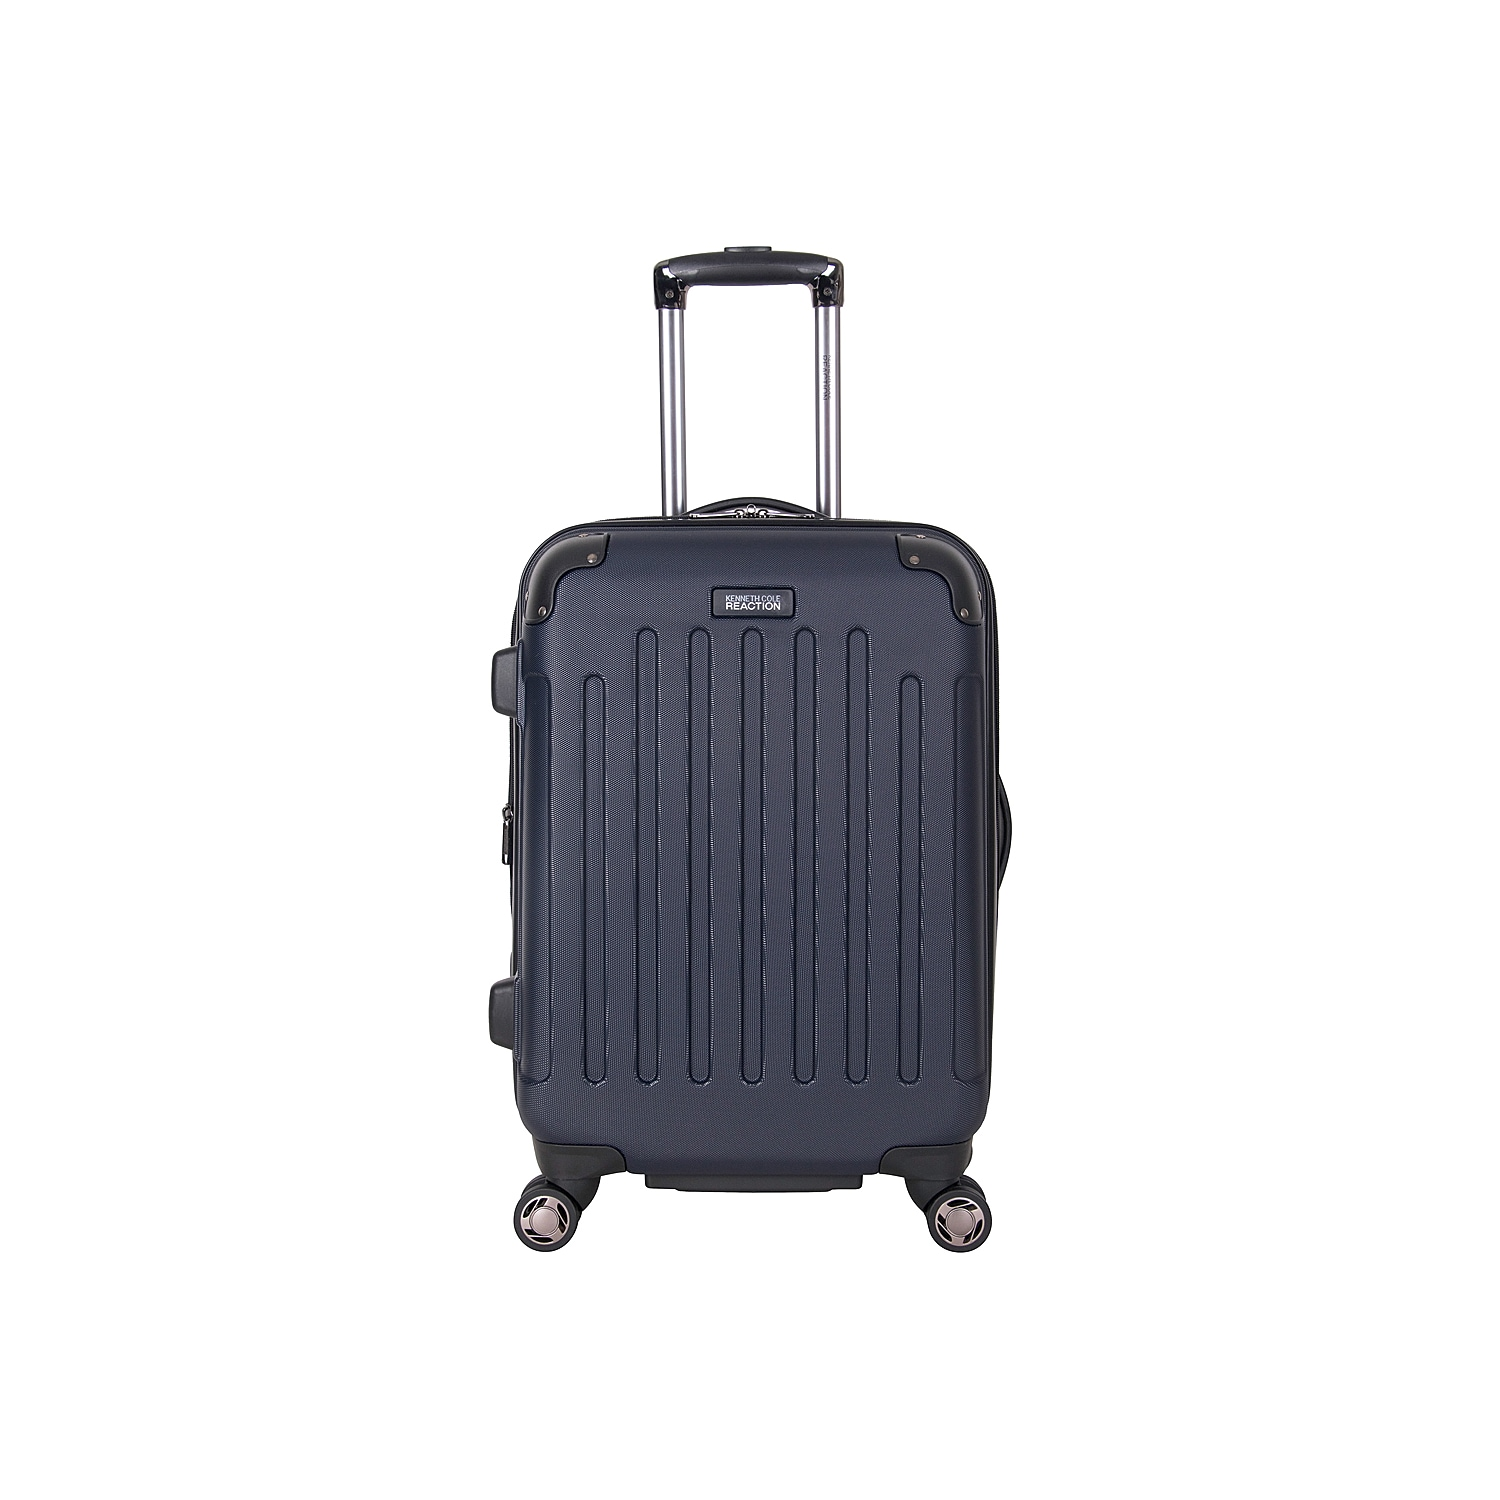 Fly through airport terminals with this free-weight rolling suitcase from Kenneth Cole Reaction. The Corner Guard expandable luggage is fitted with 8 multi-directional spinners, molded reinforcements on all four sides, and a durable hardcase exterior. Flexible top and side grab handles allow for easy lifting into airline overhead compartments.